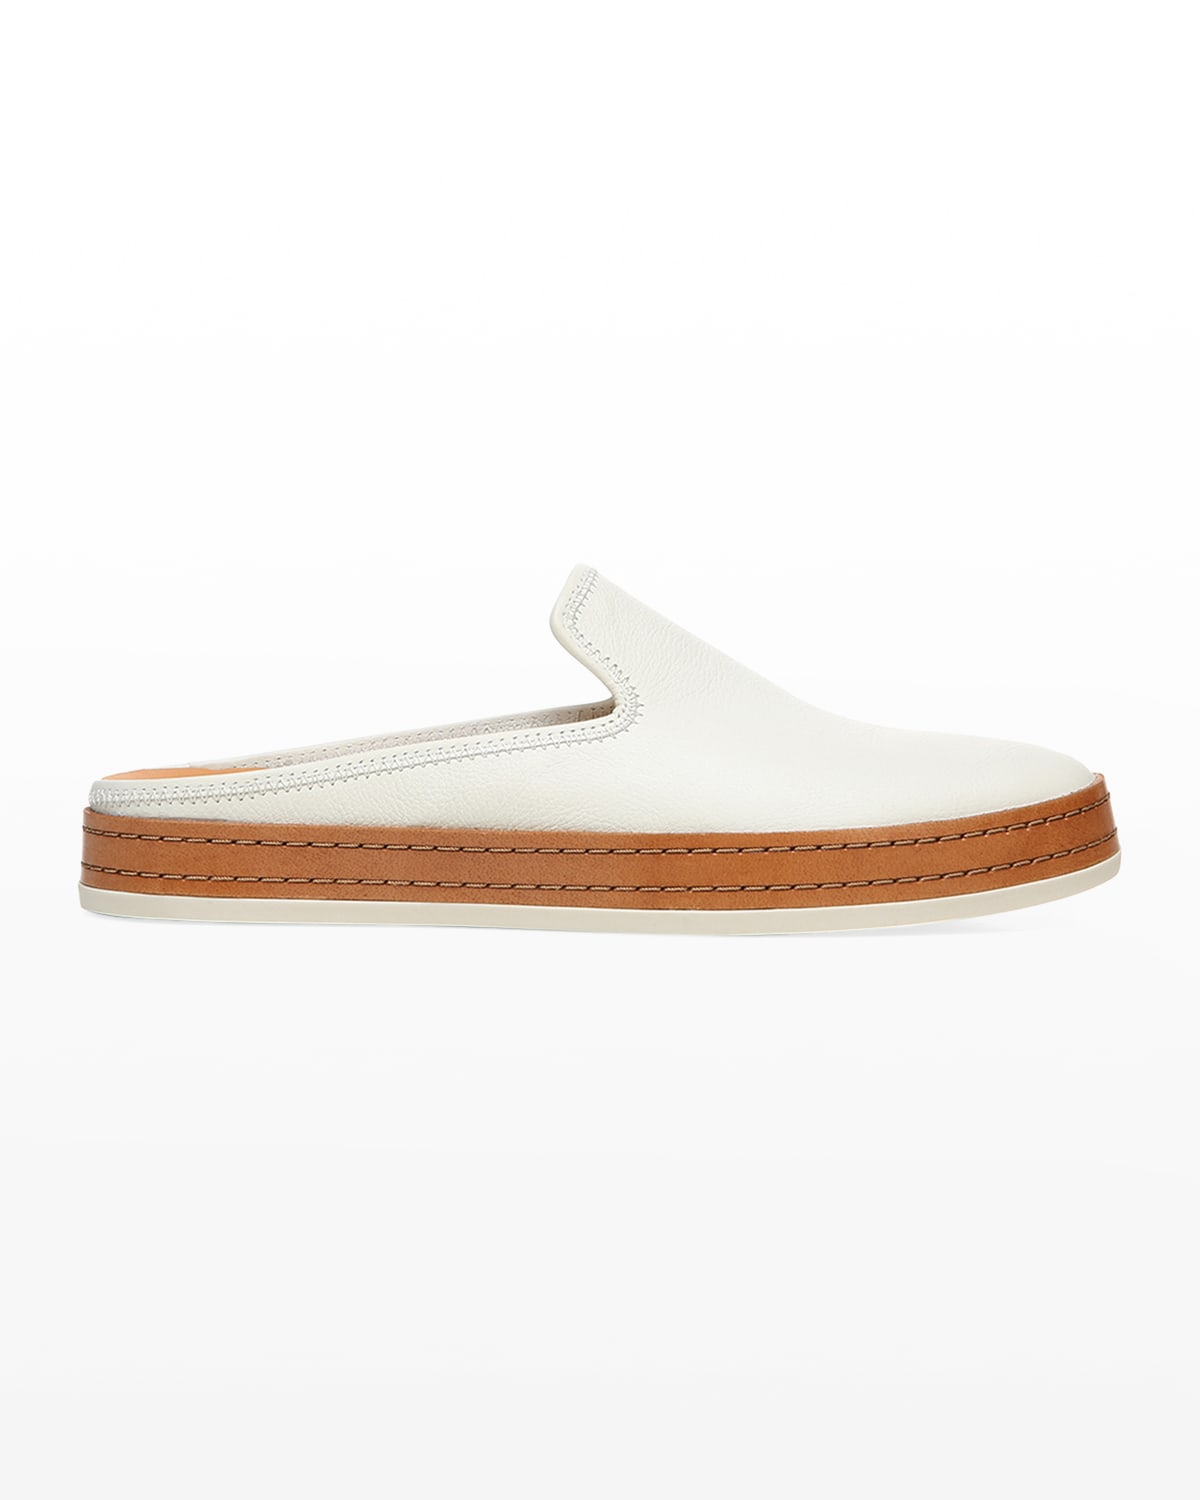 Canella Leather Slip-Ons